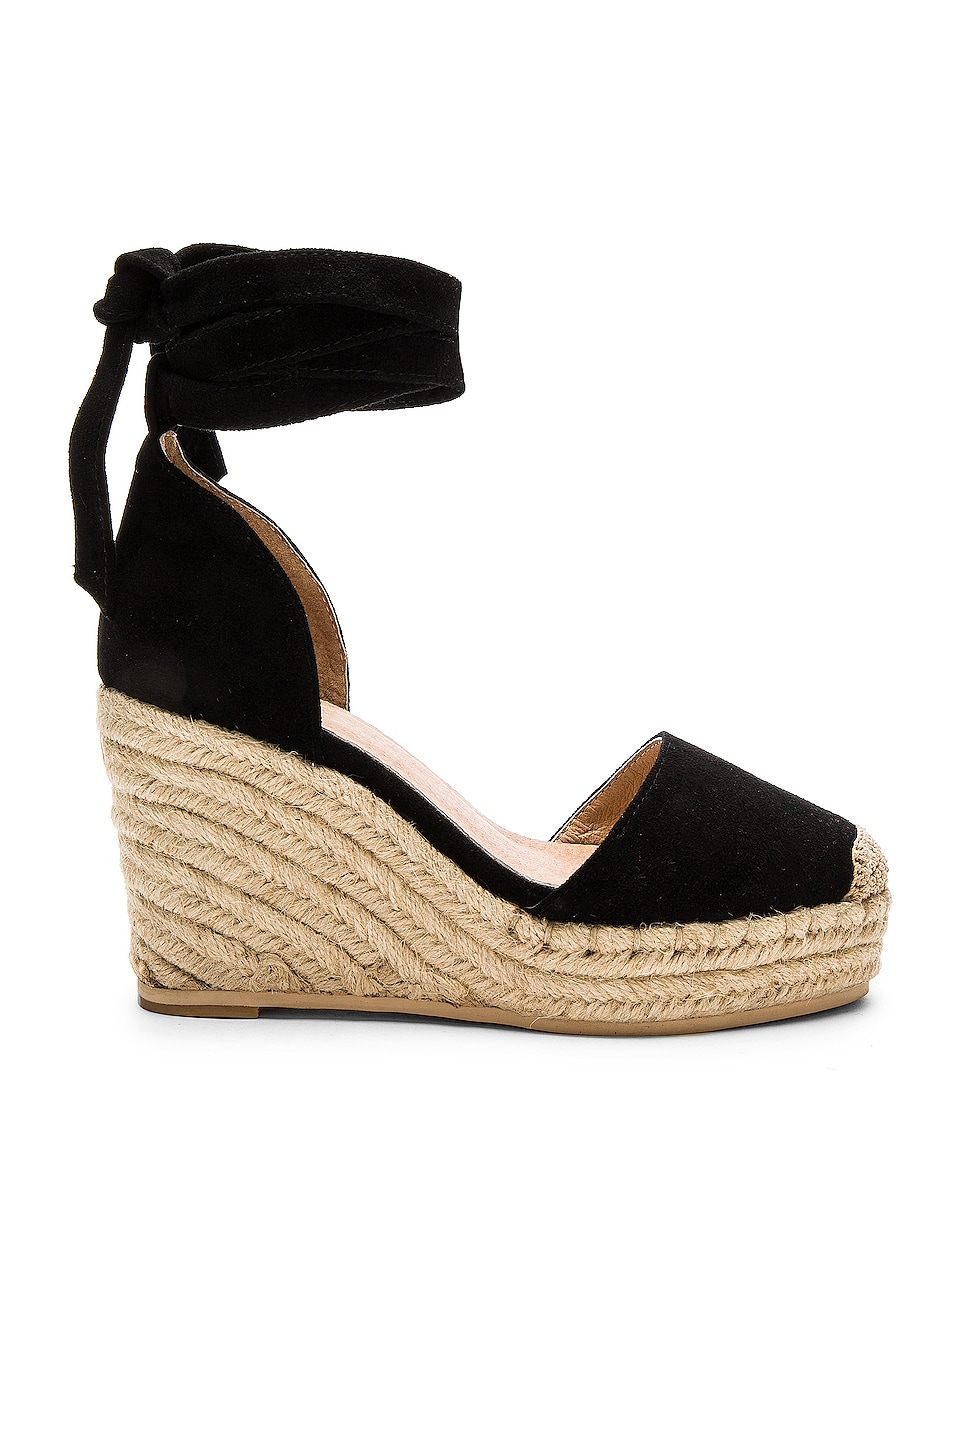 RAYE Dahlia Espadrille Wedge in Black